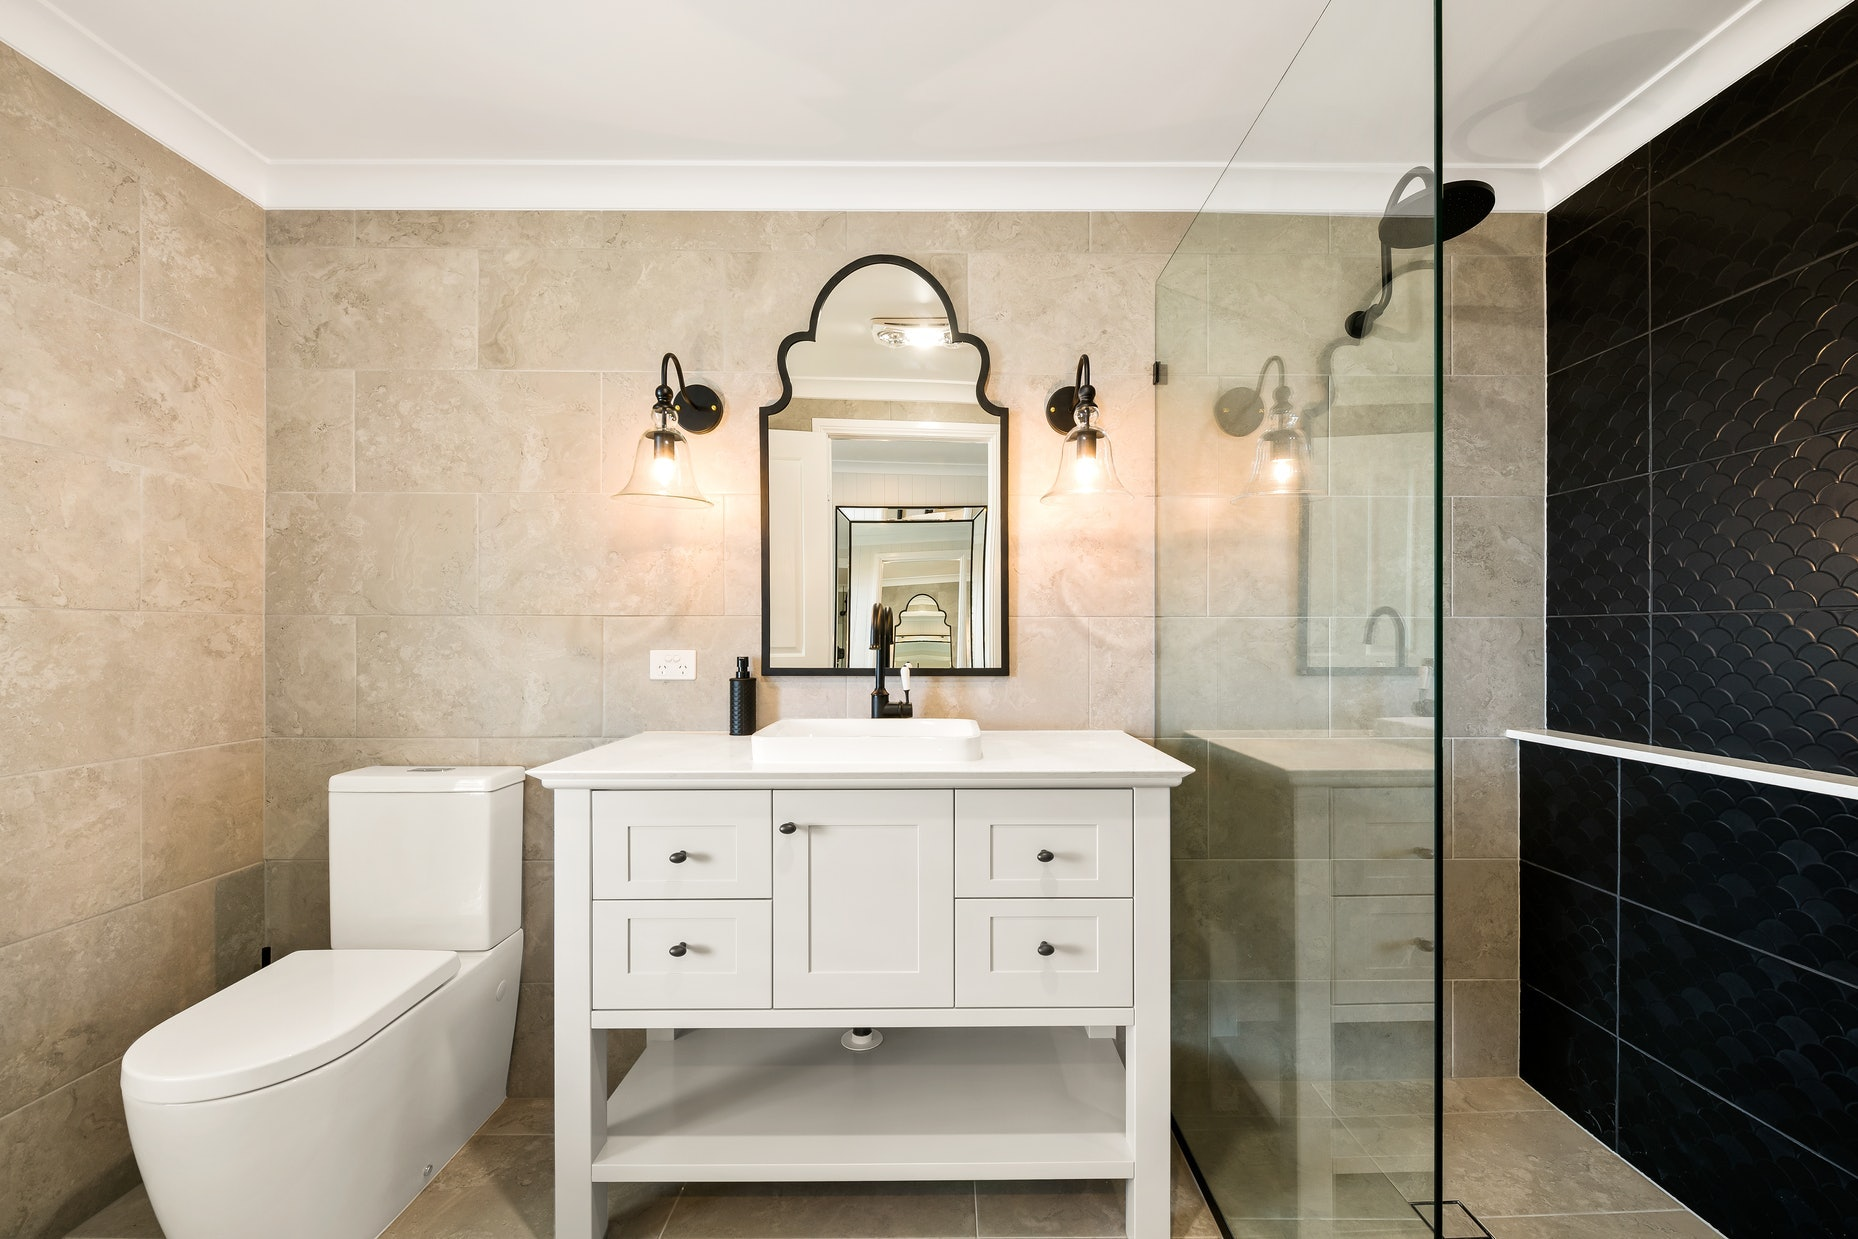 Photo of ensuite bathroom with Hamptons vanity and black scalloped mirror